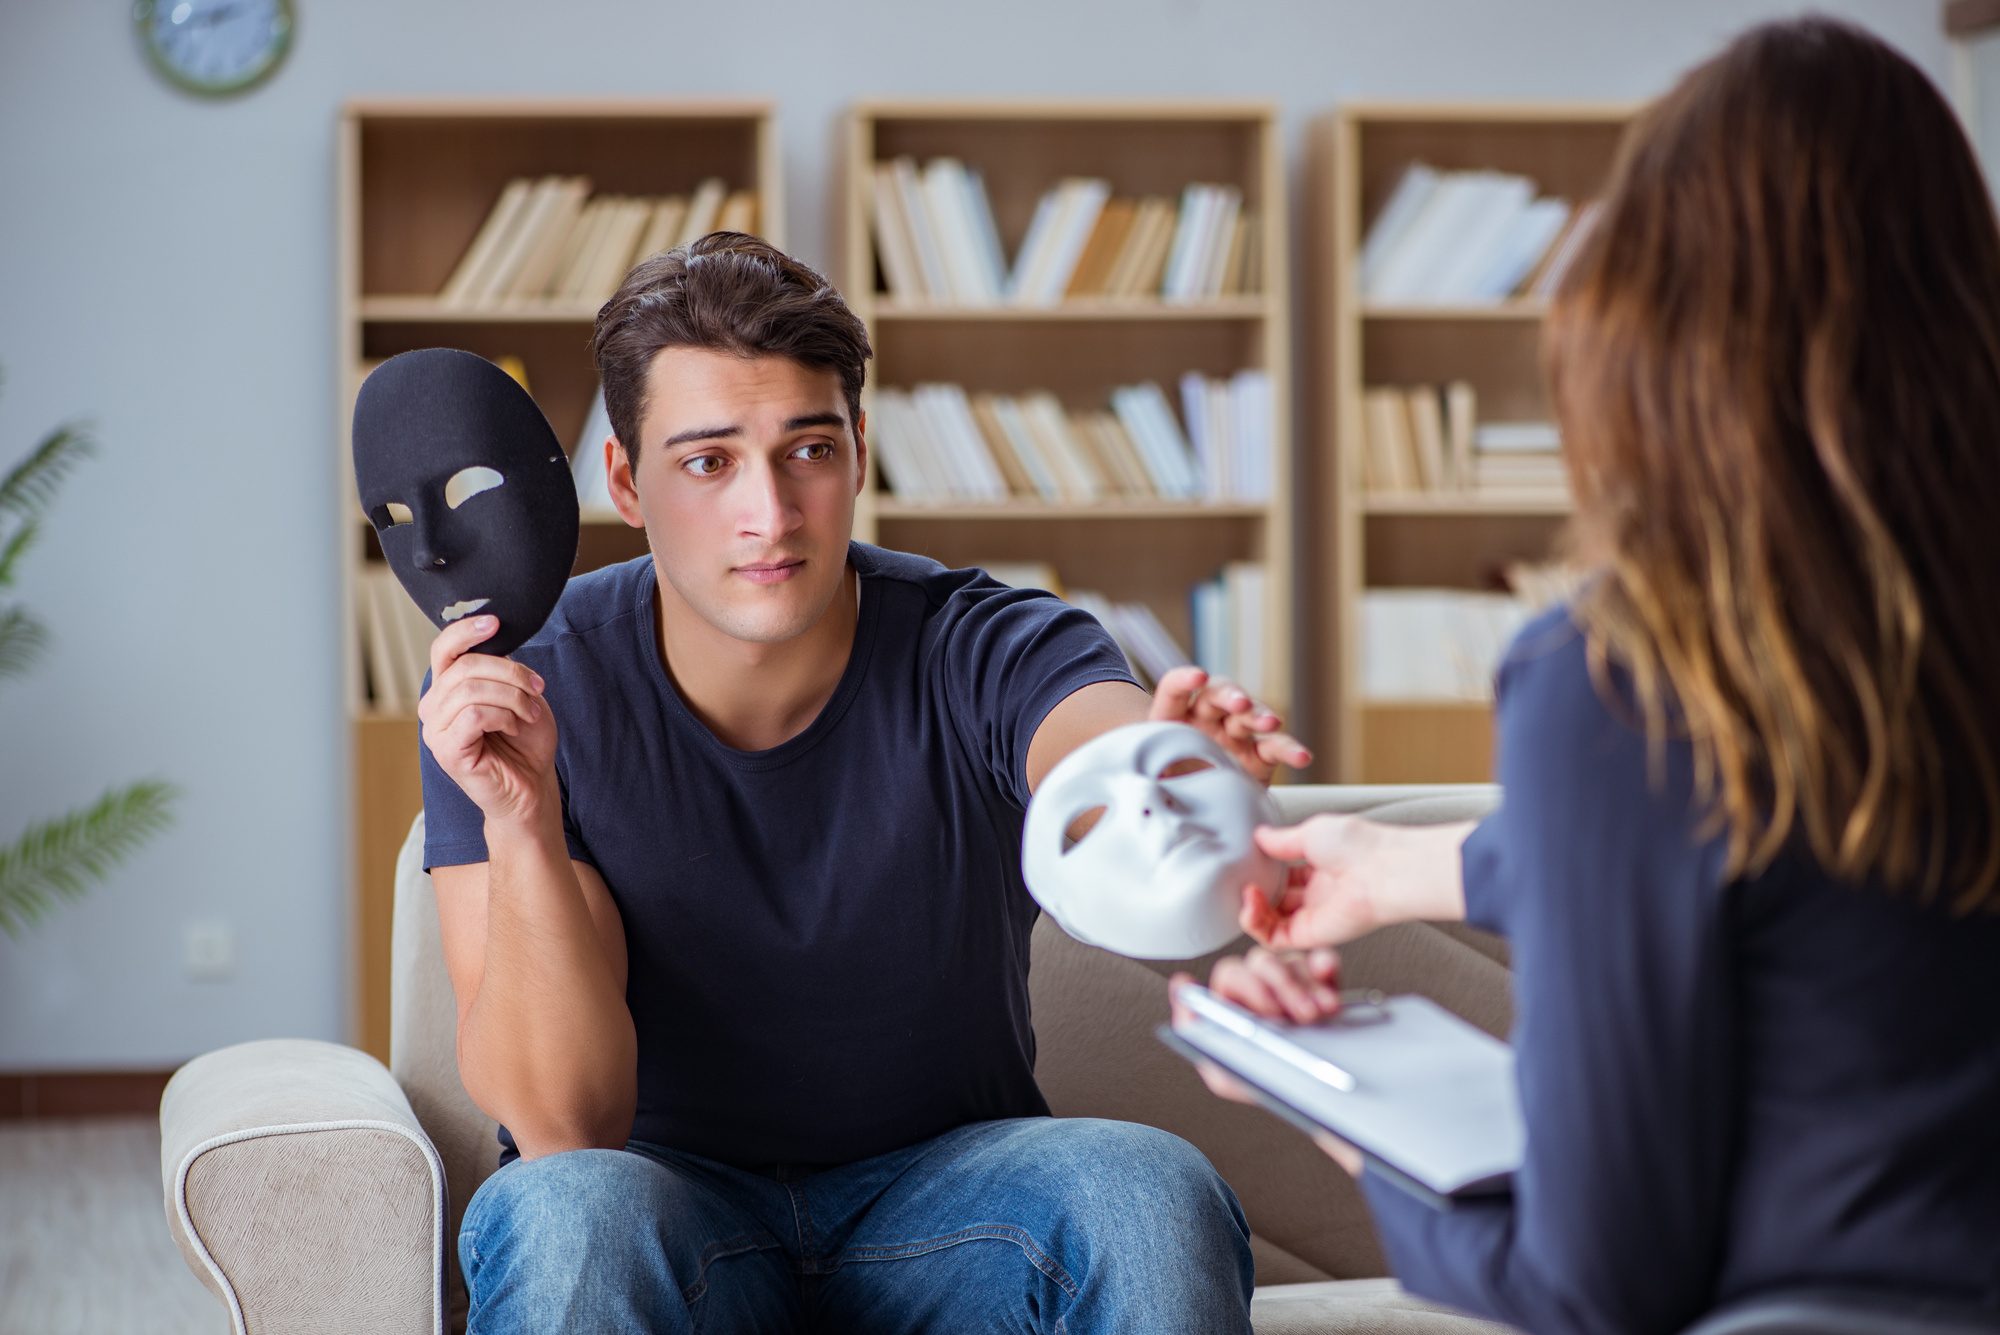 Man Attending Psychology Therapy Session With Doctor